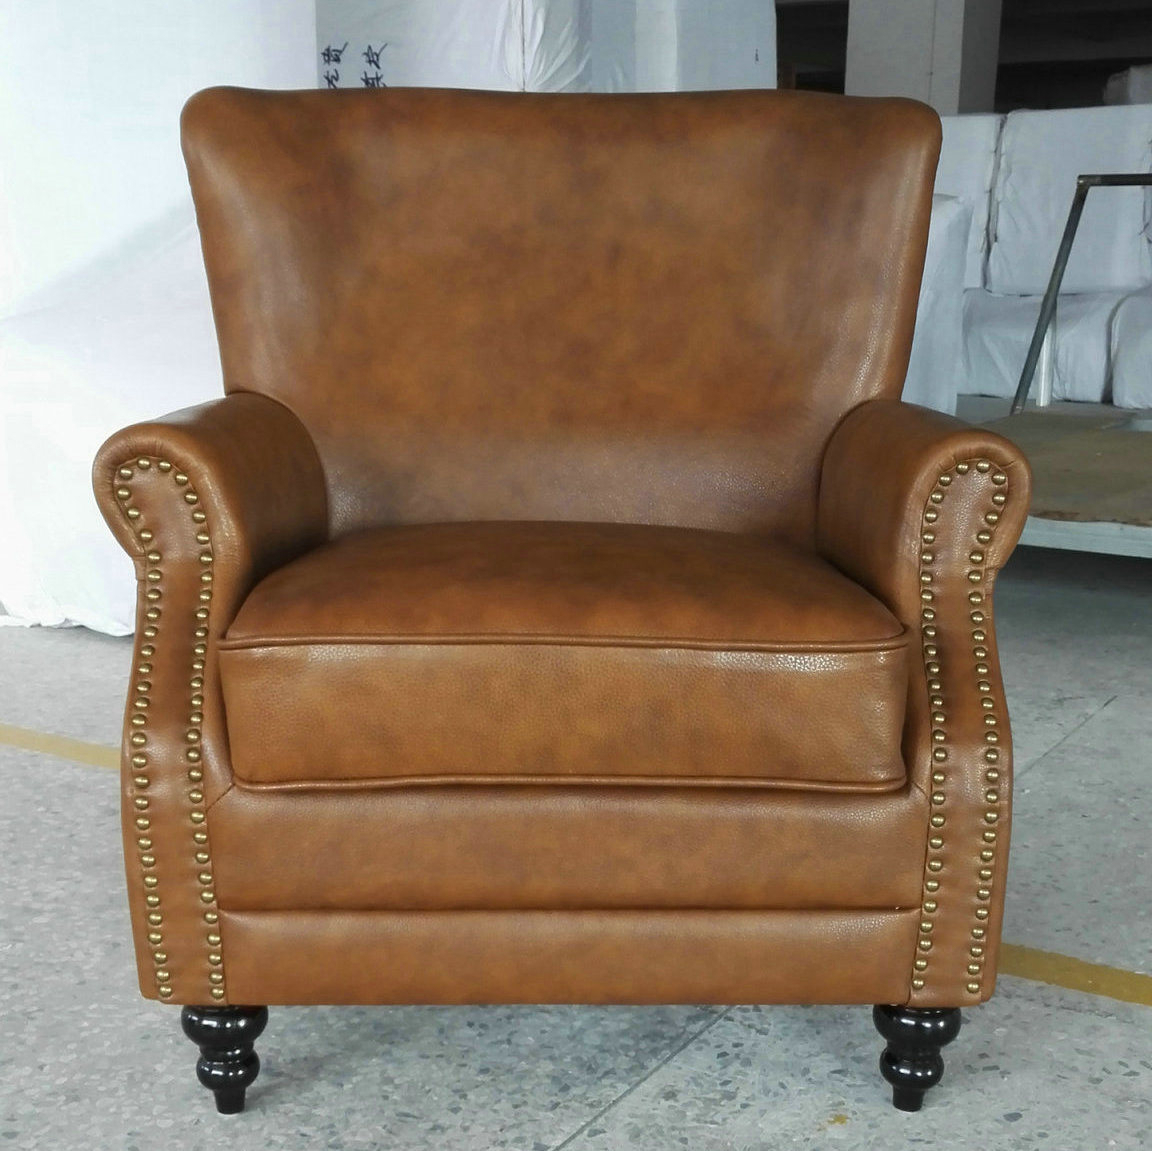 China Tobacco Color Leather Chair, Cigar Club Chair, Hotel Chair Throughout Swivel Tobacco Leather Chairs (View 25 of 25)